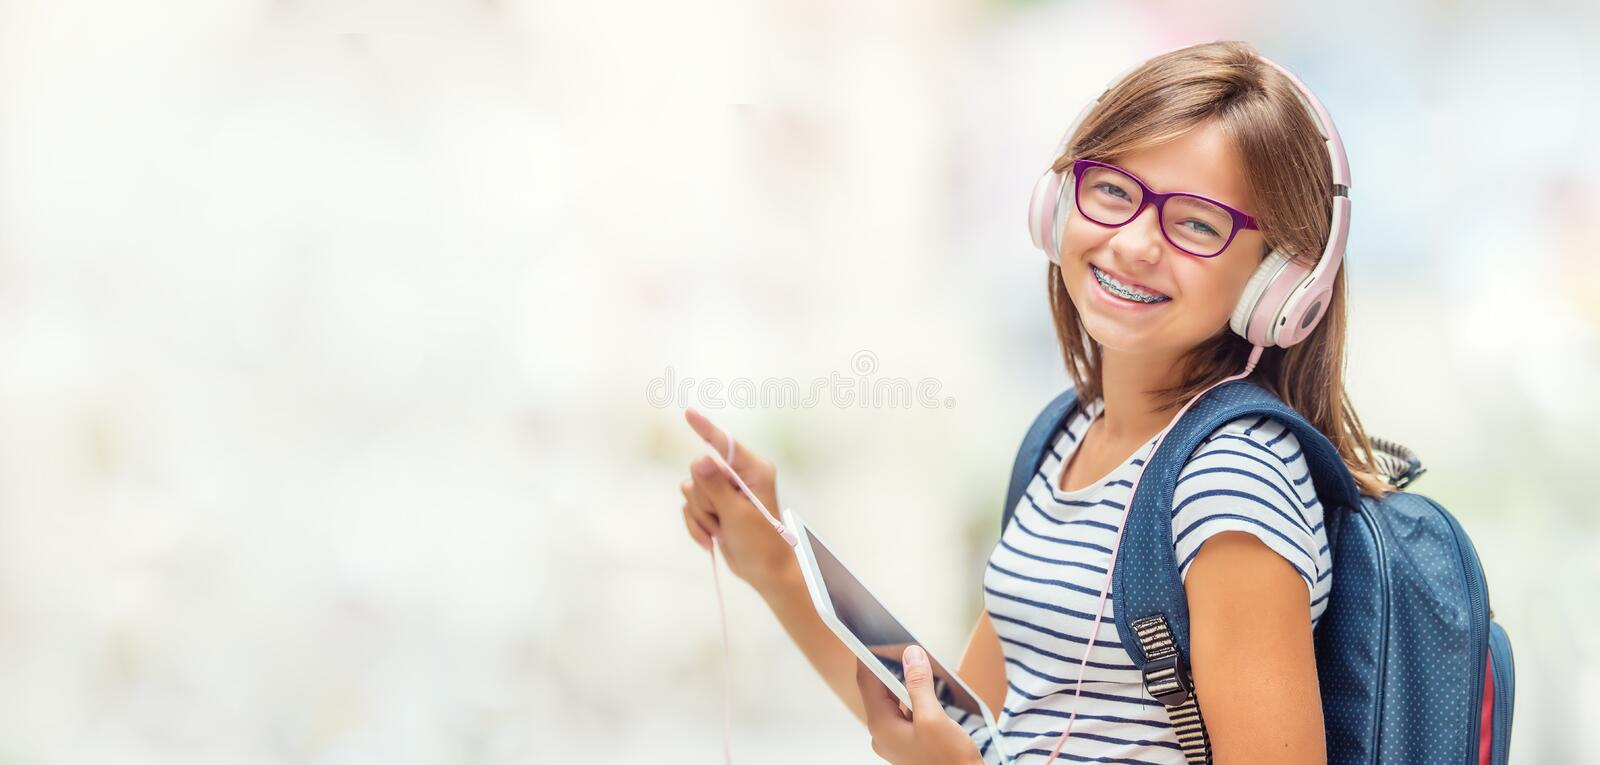 Portrait of modern happy teen school girl with bag backpack head royalty free stock images